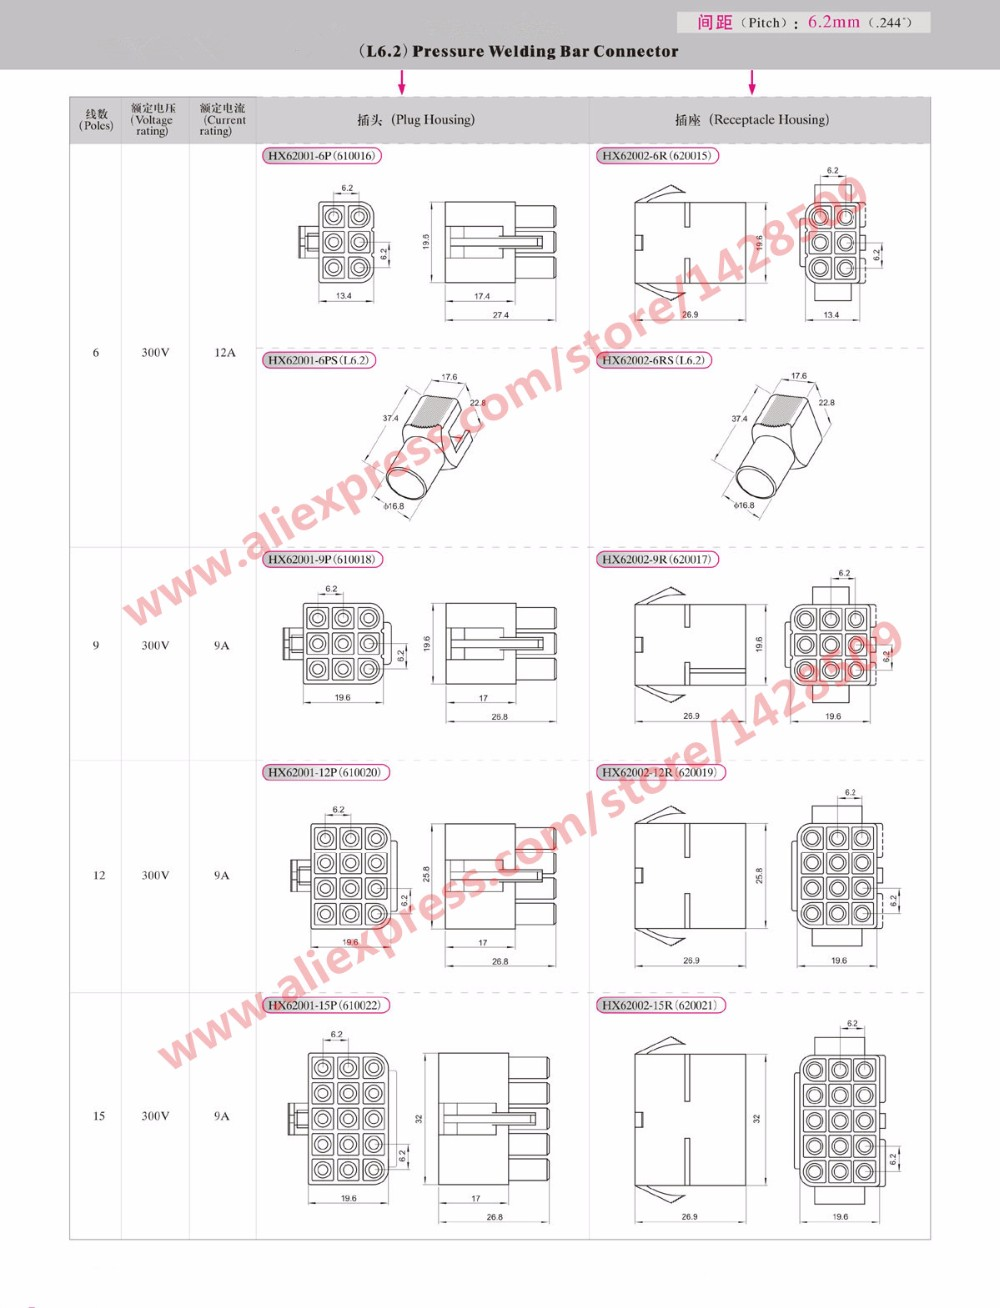 10 Sets 6 Pin Way Female And Male Big Tamiya Connector Kits Large Pinout Diagram Aliexpresscom Buy 15cm Usb Rs232 To Db9 Serial Getsubject Aeproductgetsubject